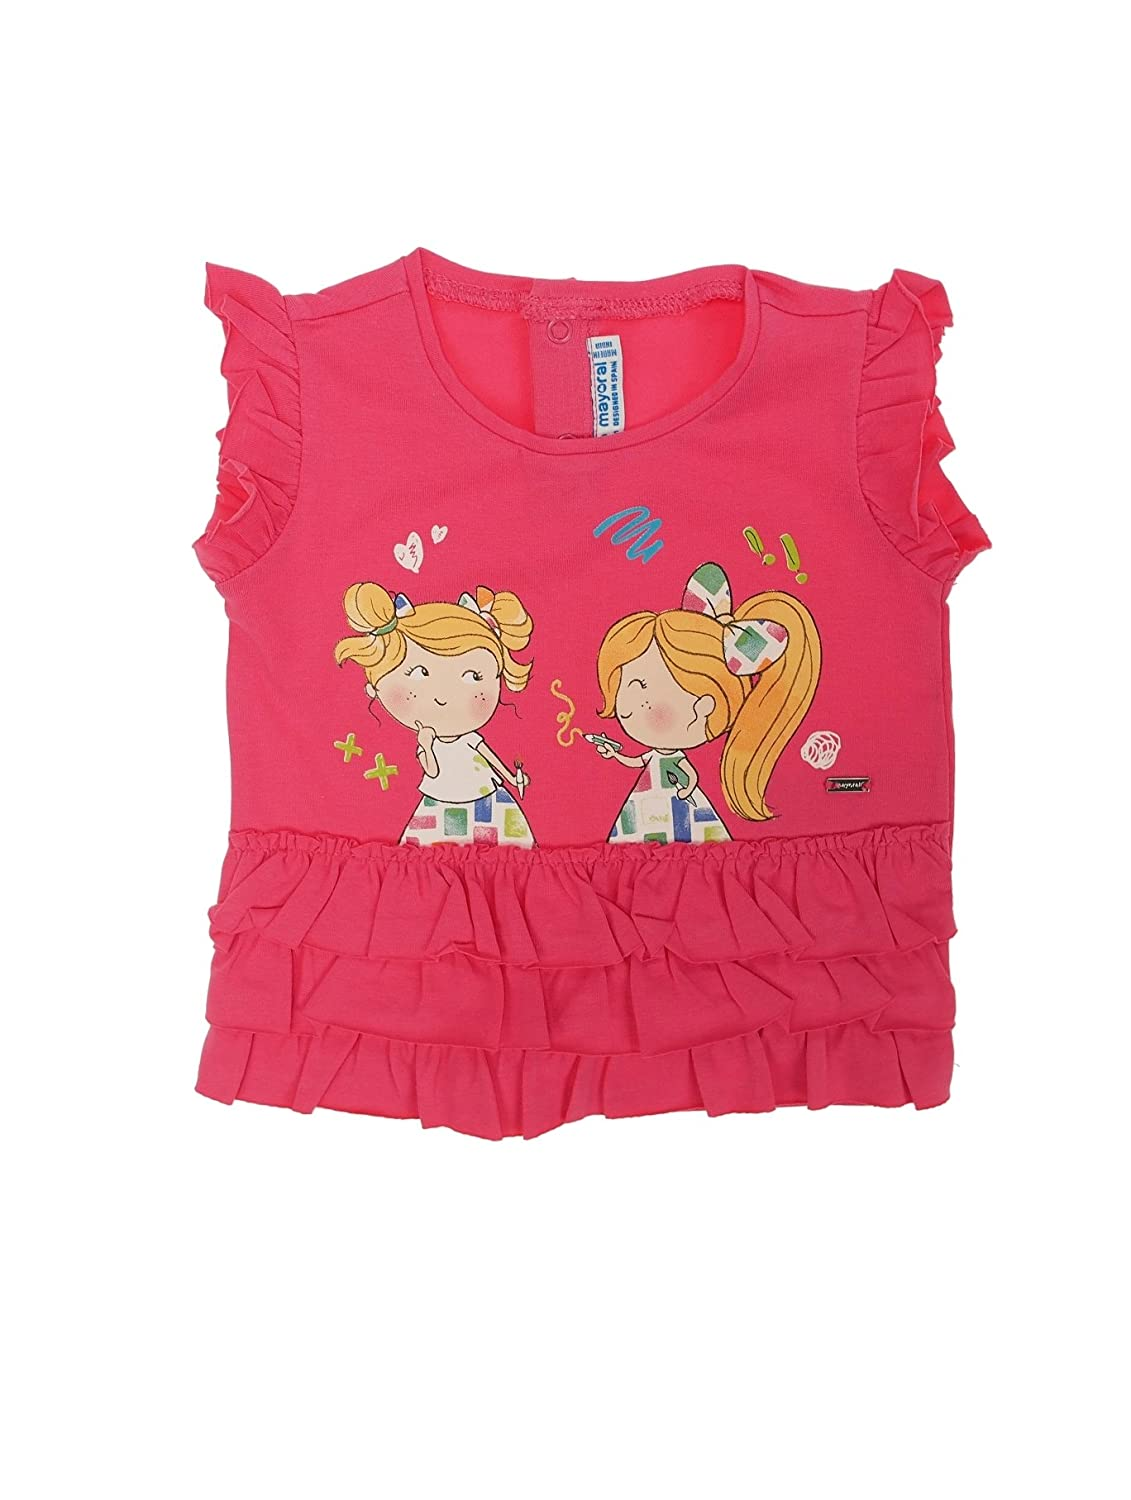 S//s t-Shirt for Baby-Girls Mayoral 1016 Fuchsia